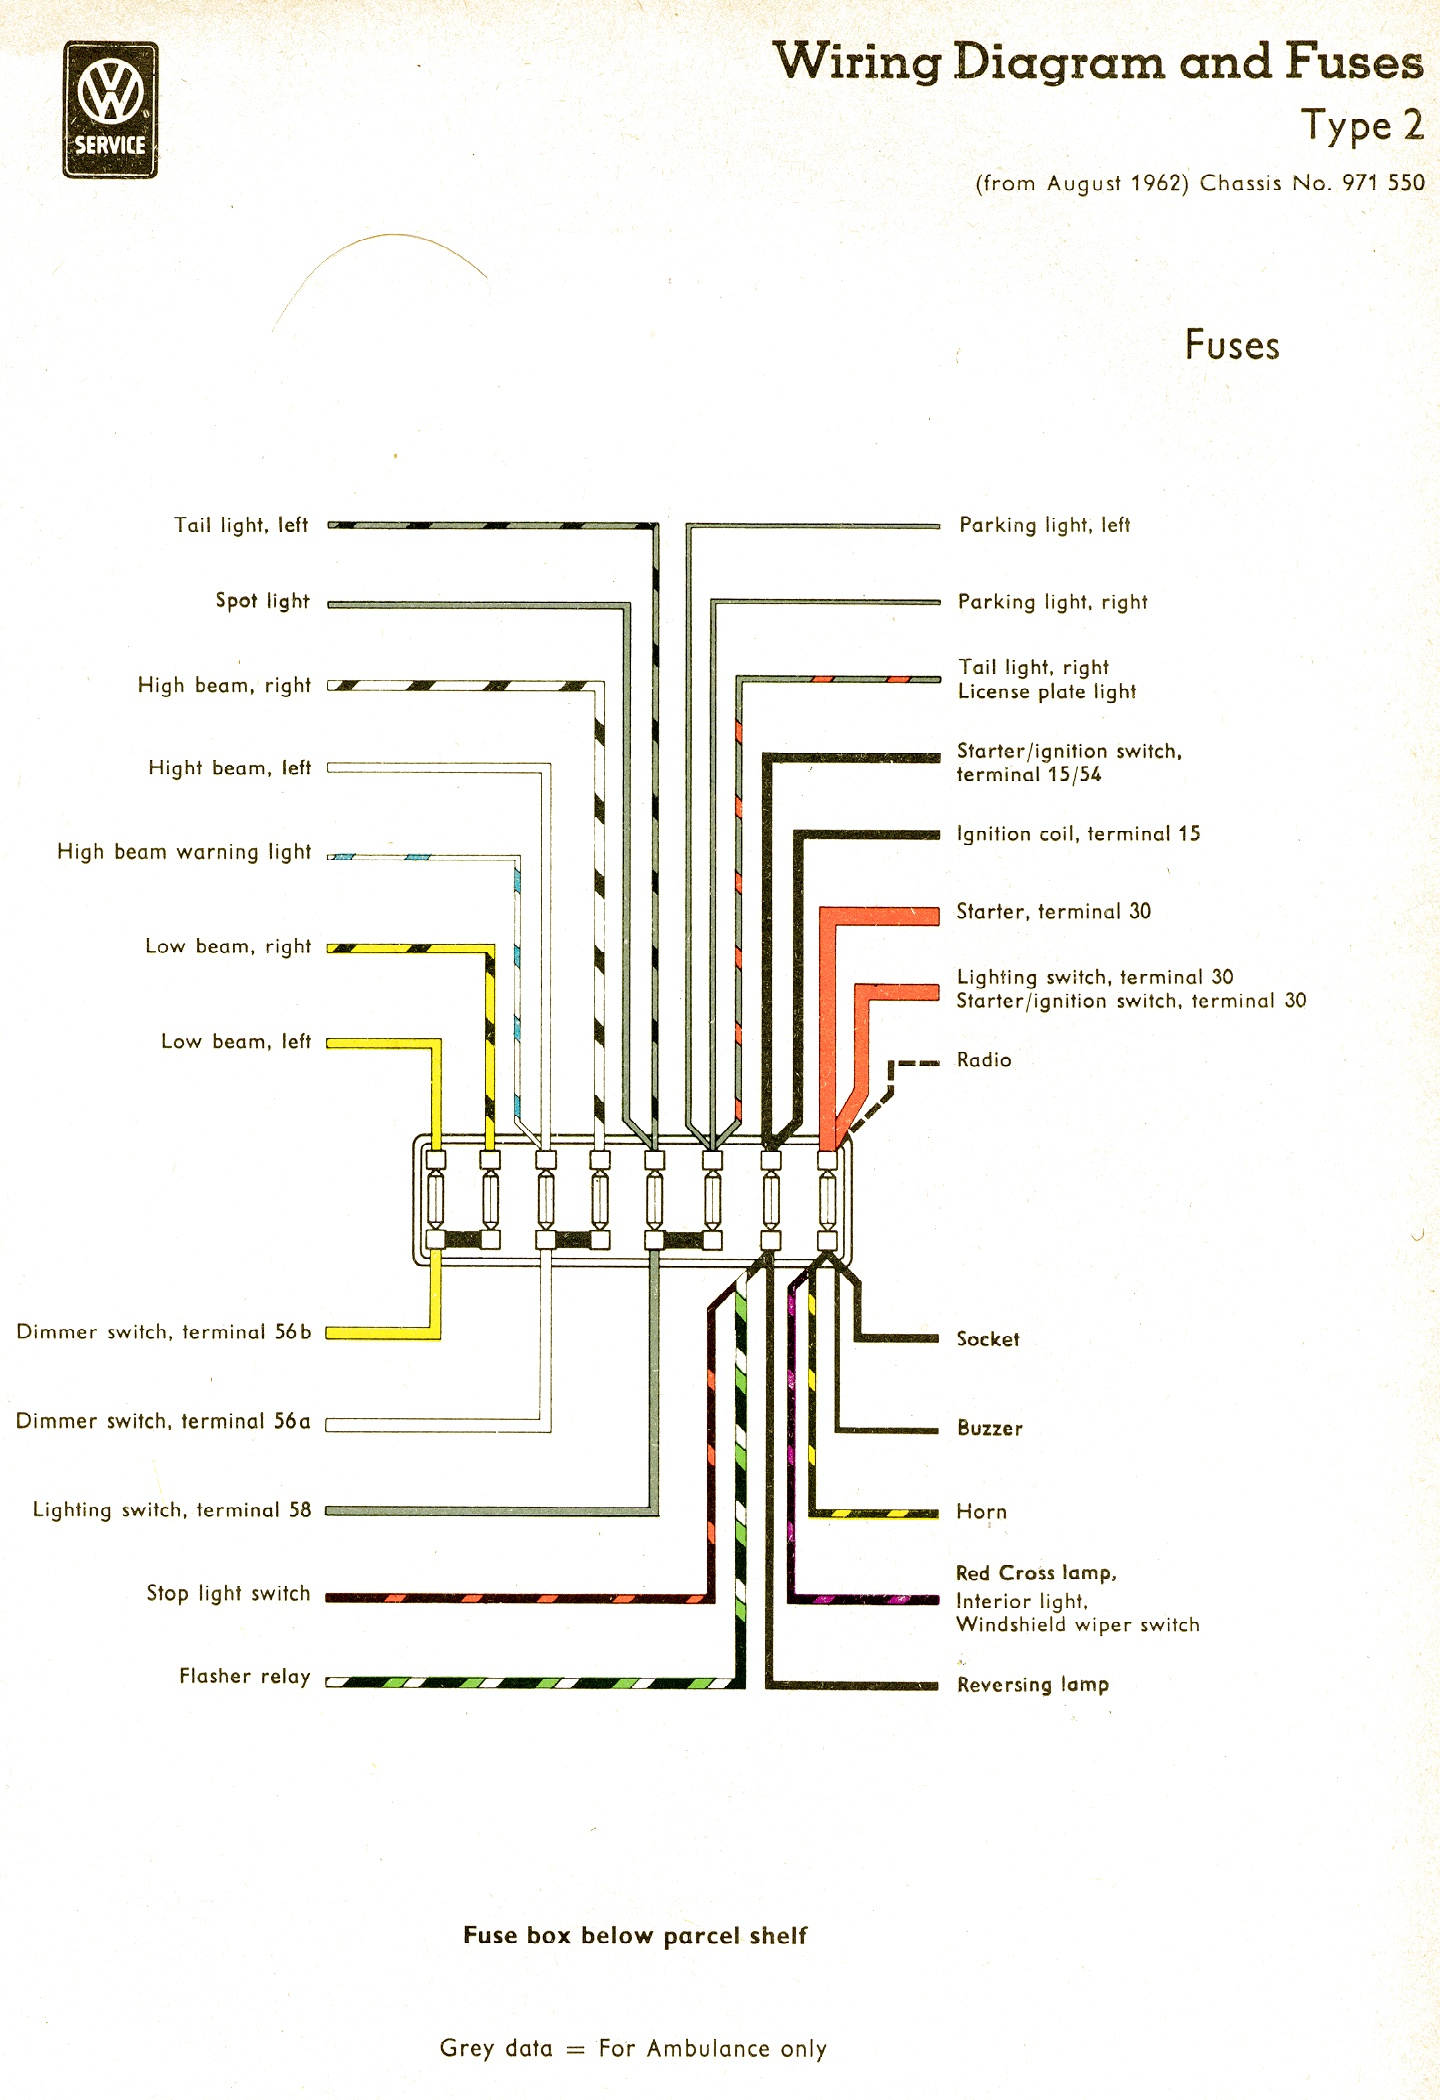 bus 62 fuse vw wiring diagrams 1972 vw beetle fuse box diagram at nearapp.co